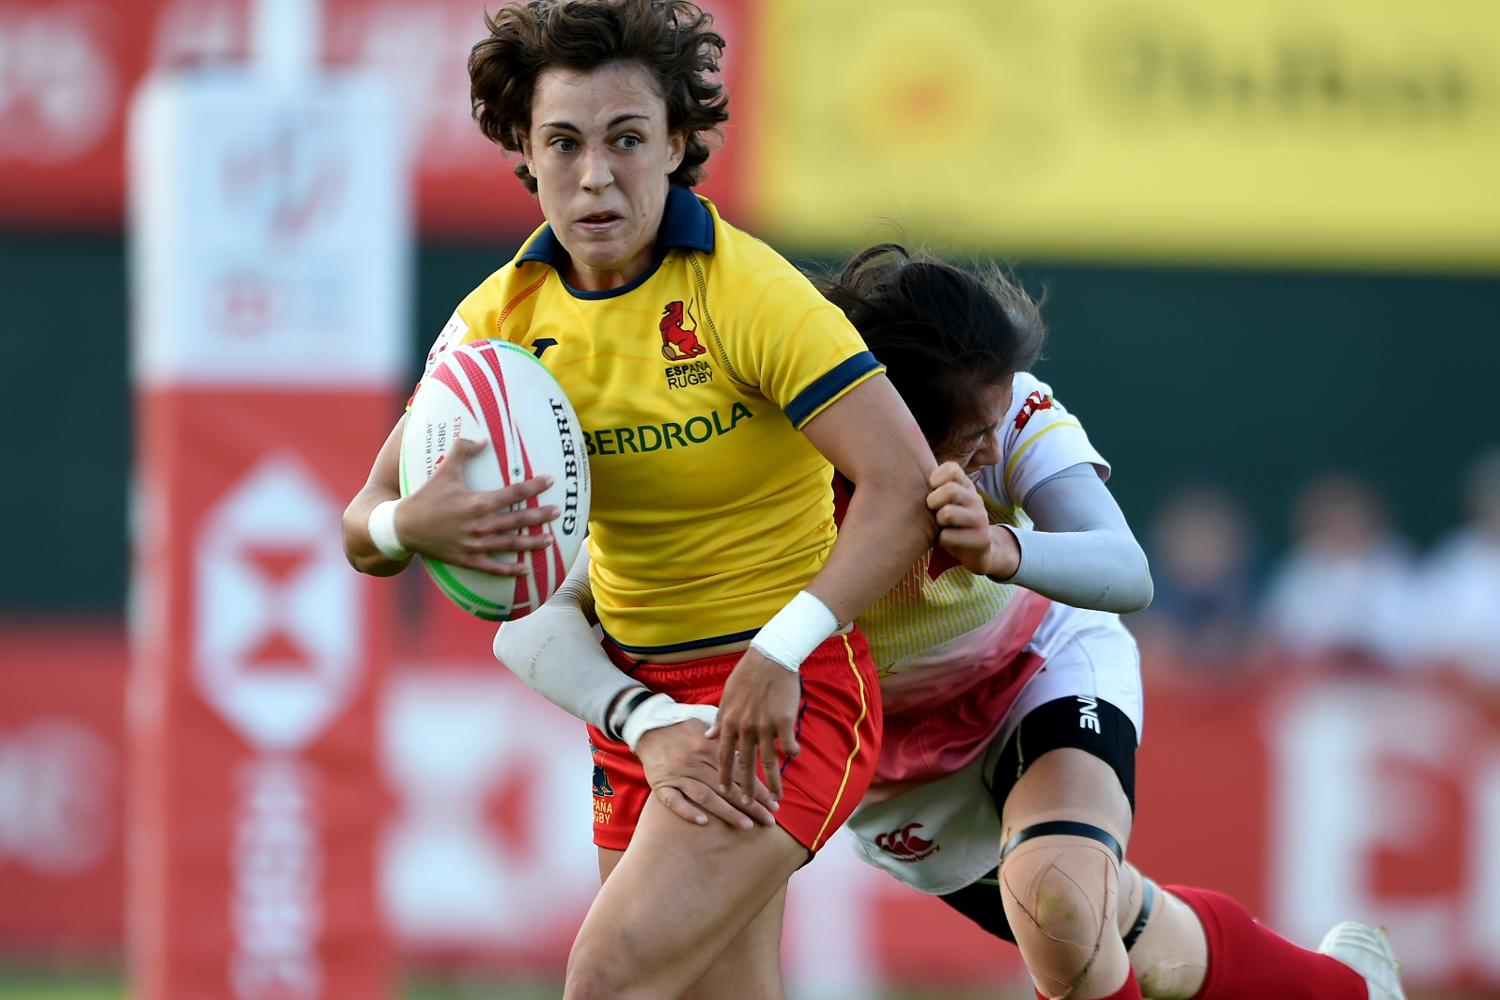 Emirates Airline Dubai Rugby Sevens - Women's